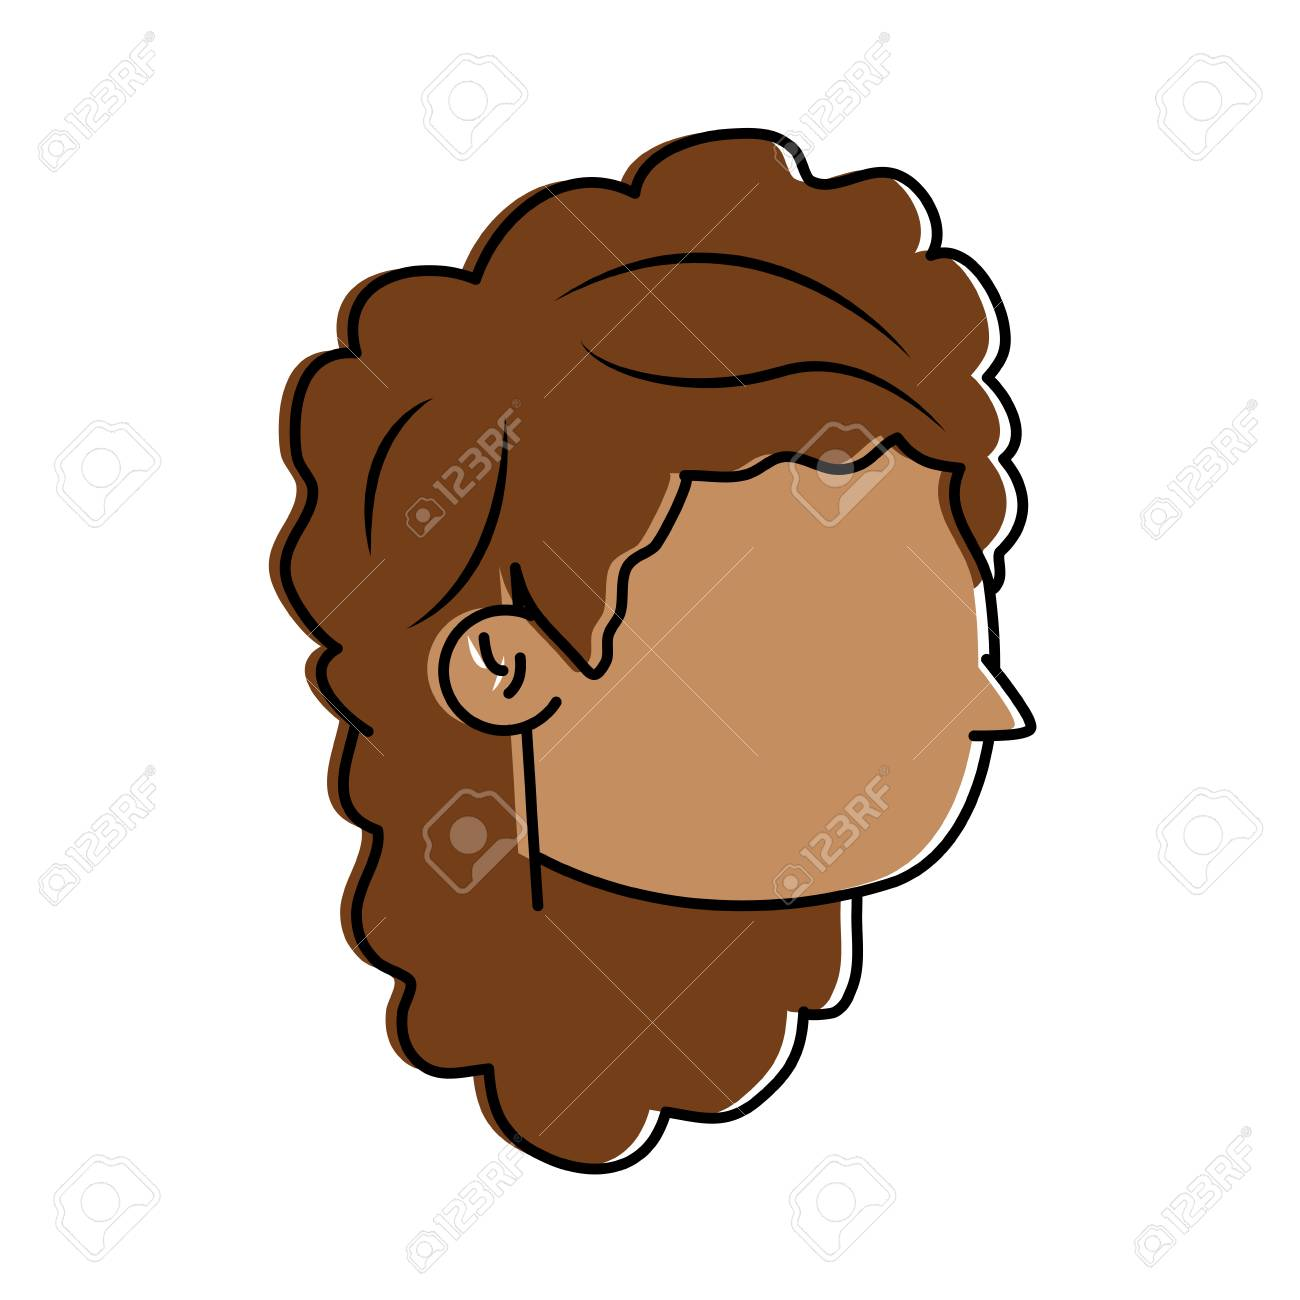 Woman Avatar Head With Long Curly Hair Icon Image Vector